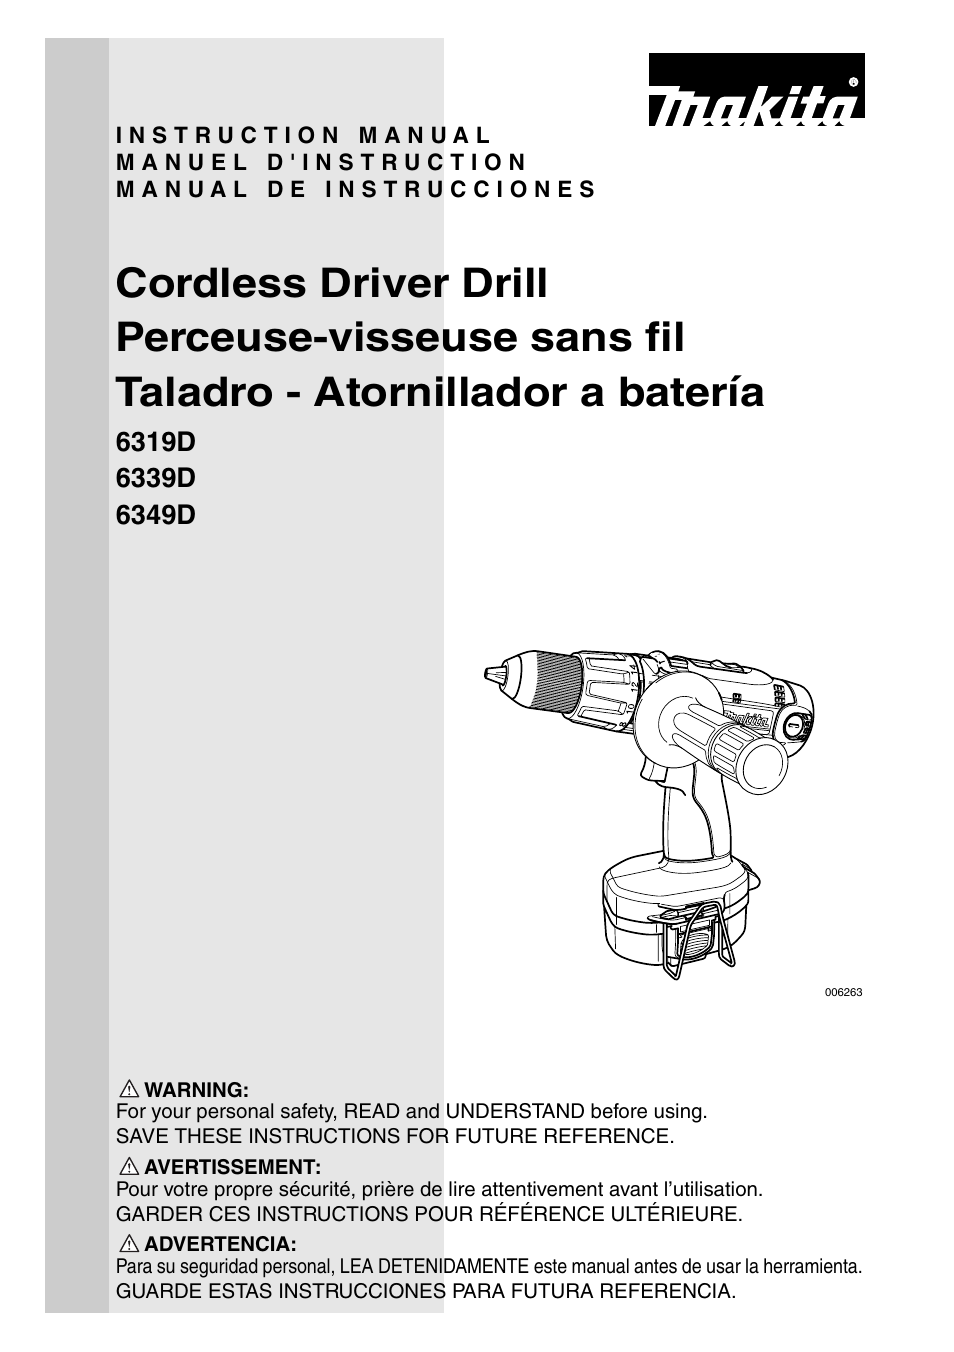 Makita 6339D User Manual | 32 pages | Also for: 6349D